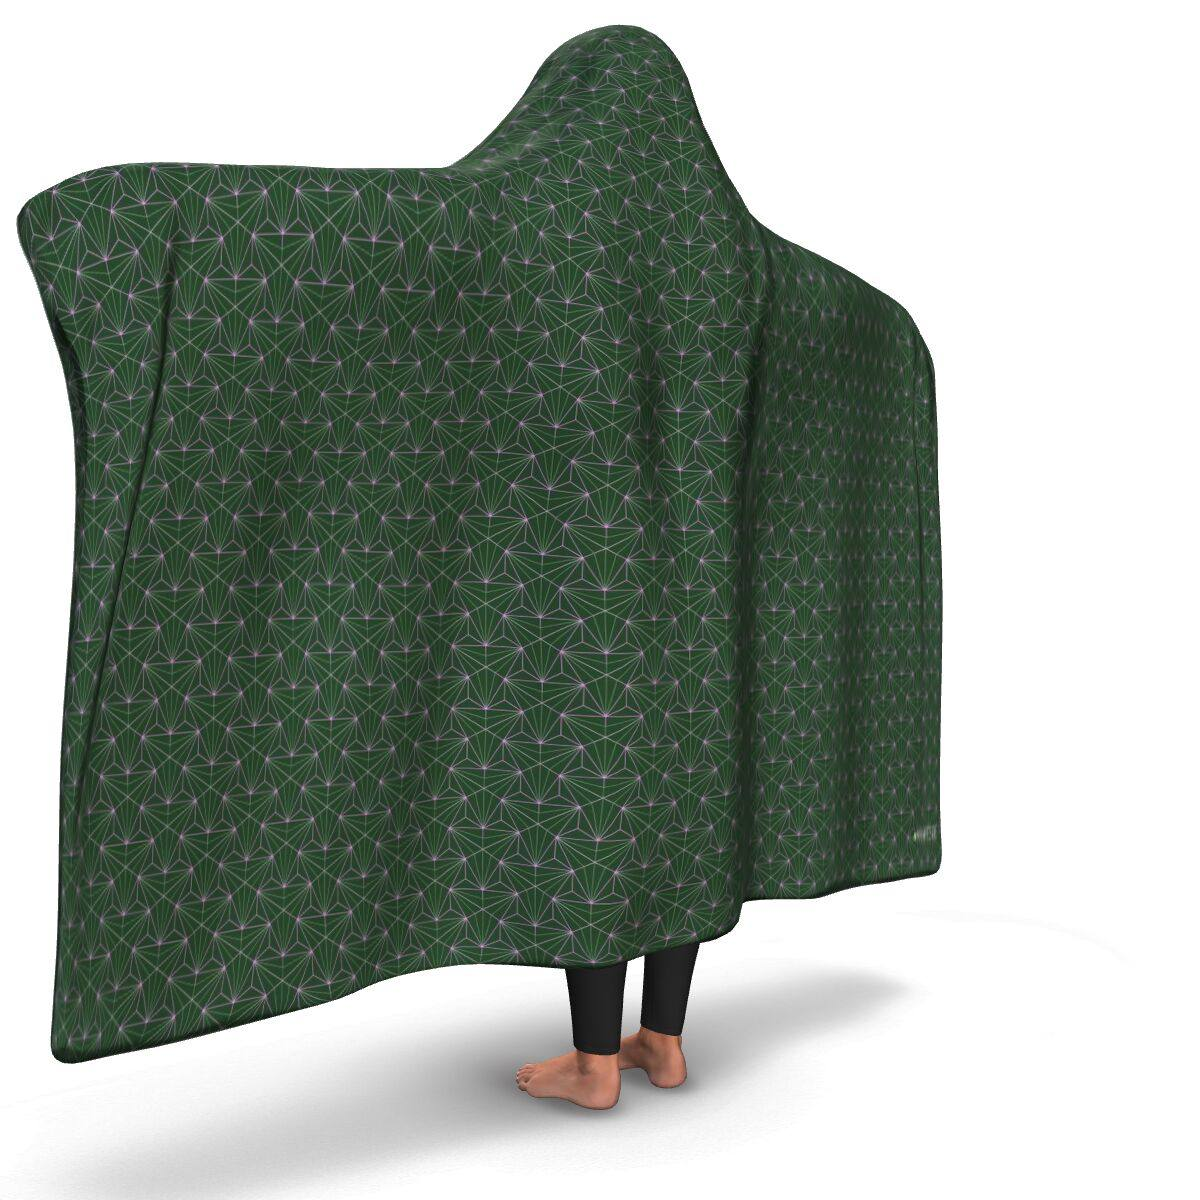 JADE PREMIUM HOODED BLANKET with WRIST STRAPS | Plush, Premium Sherpa | Kids, Adult